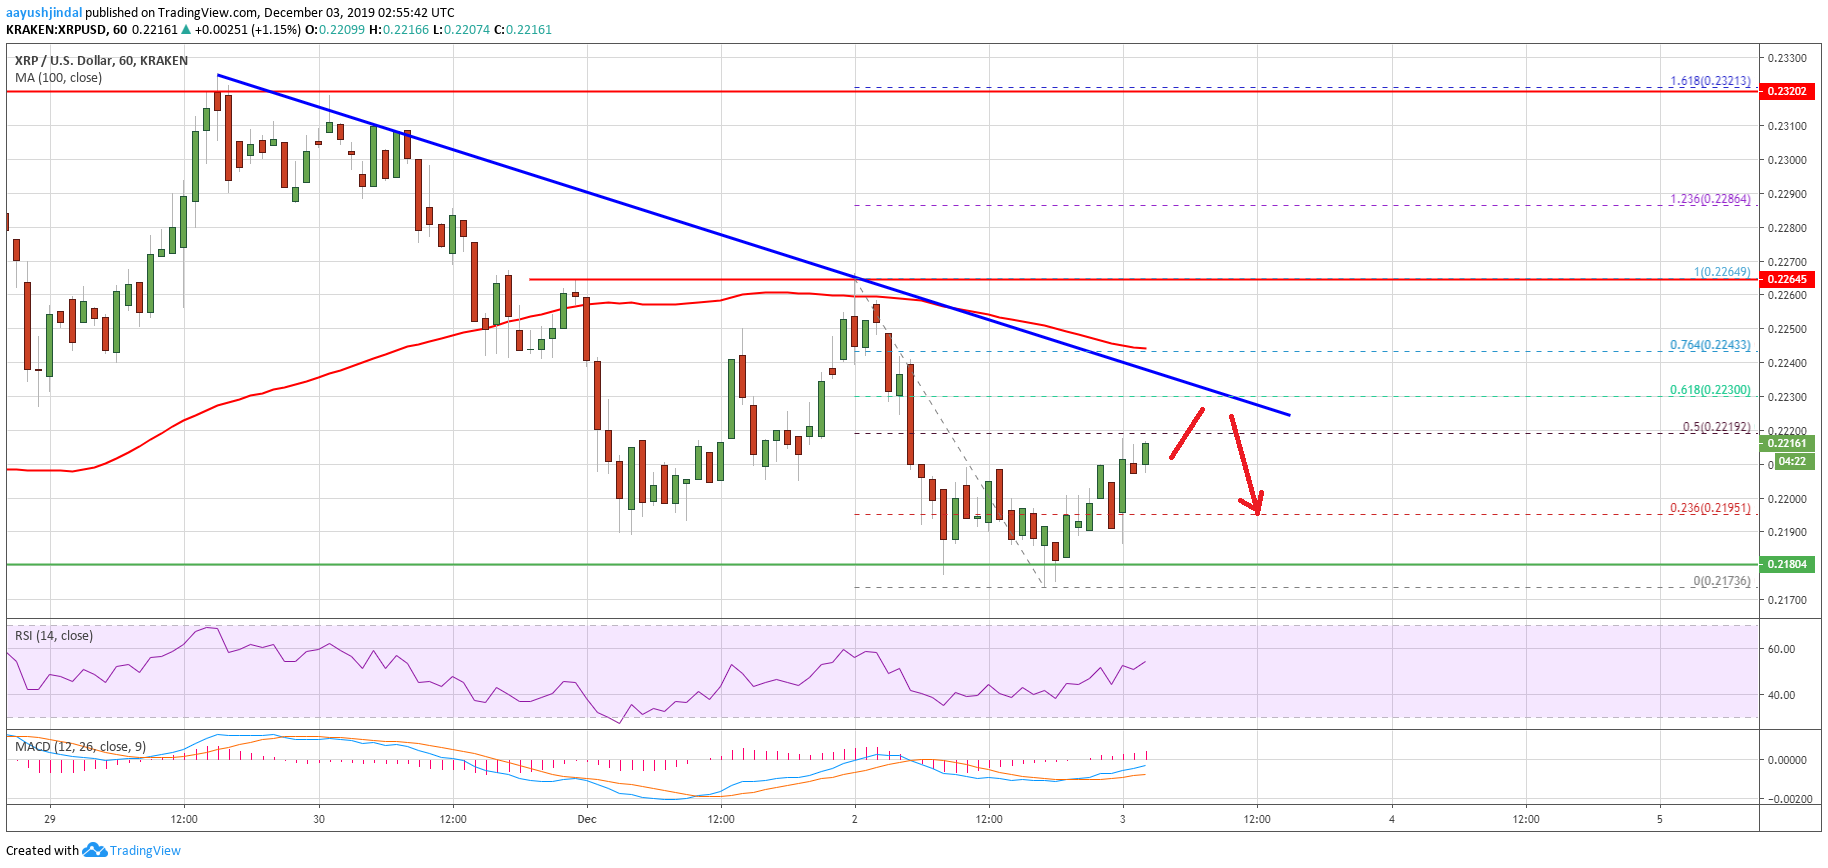 Ripple Price 1 - Ripple (XRP) Price Continues To Probe Key Supports